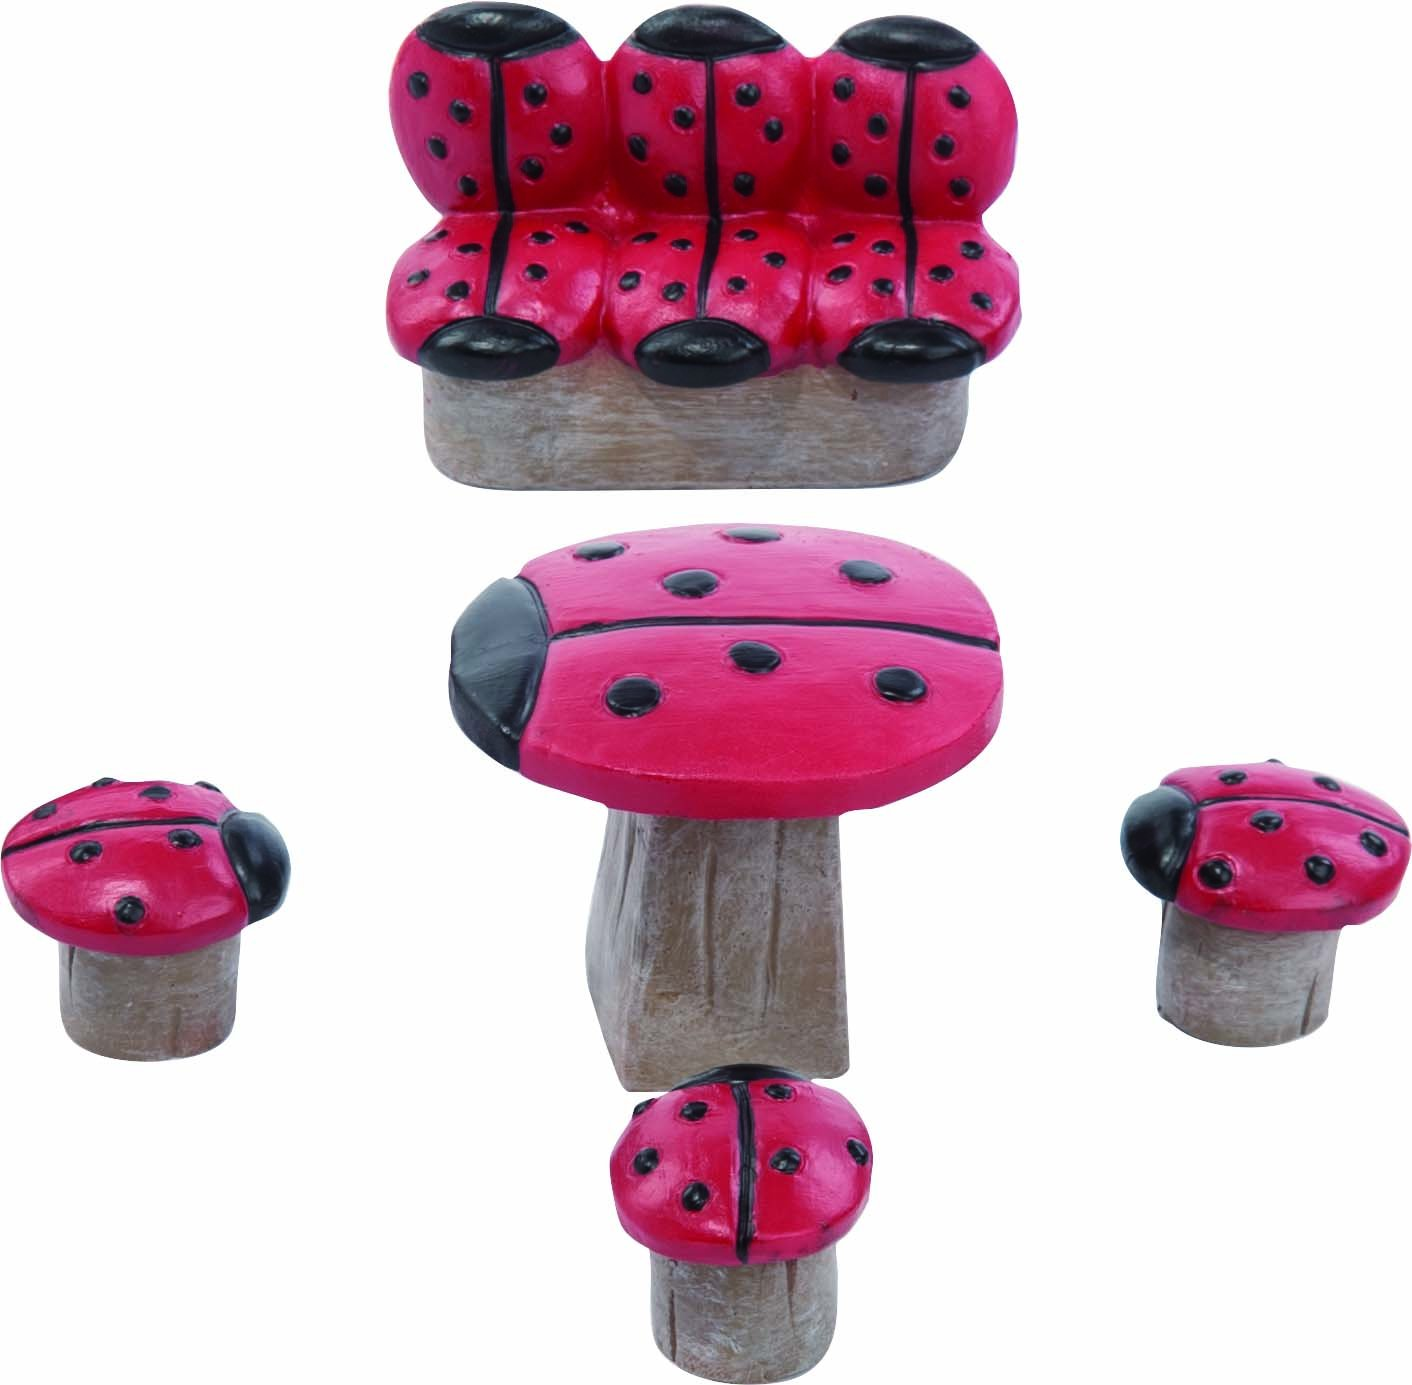 Transpac Imports, Inc. Miniature Lady Bug Spotted Garden Fairy Furniture 3 inch Resin Decoration Set of 5